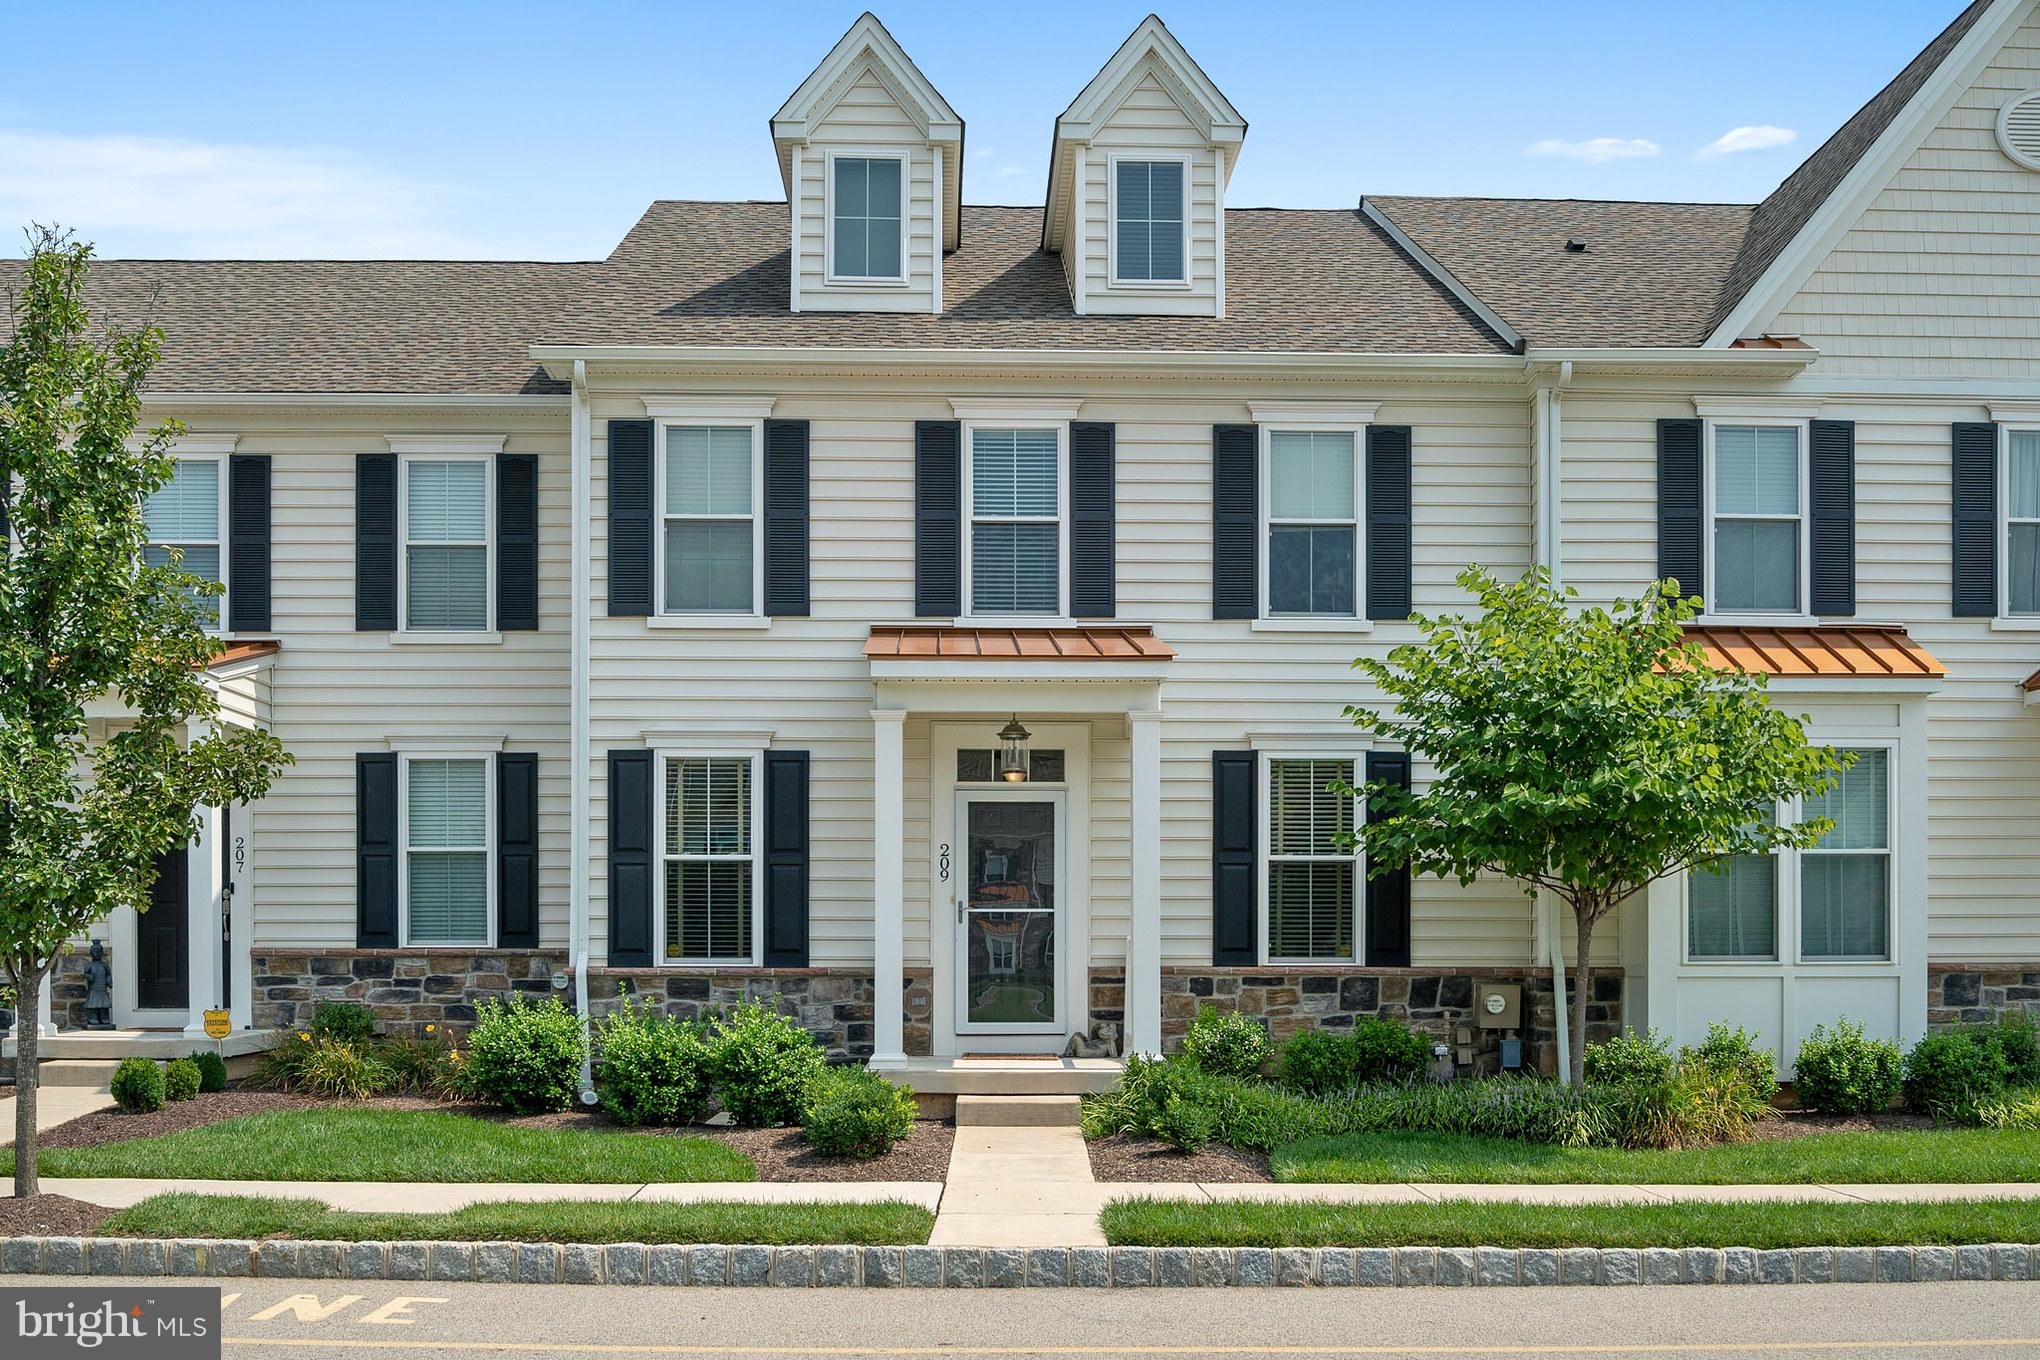 209 RITTENHOUSE SQUARE, PLYMOUTH MEETING, PA 19462